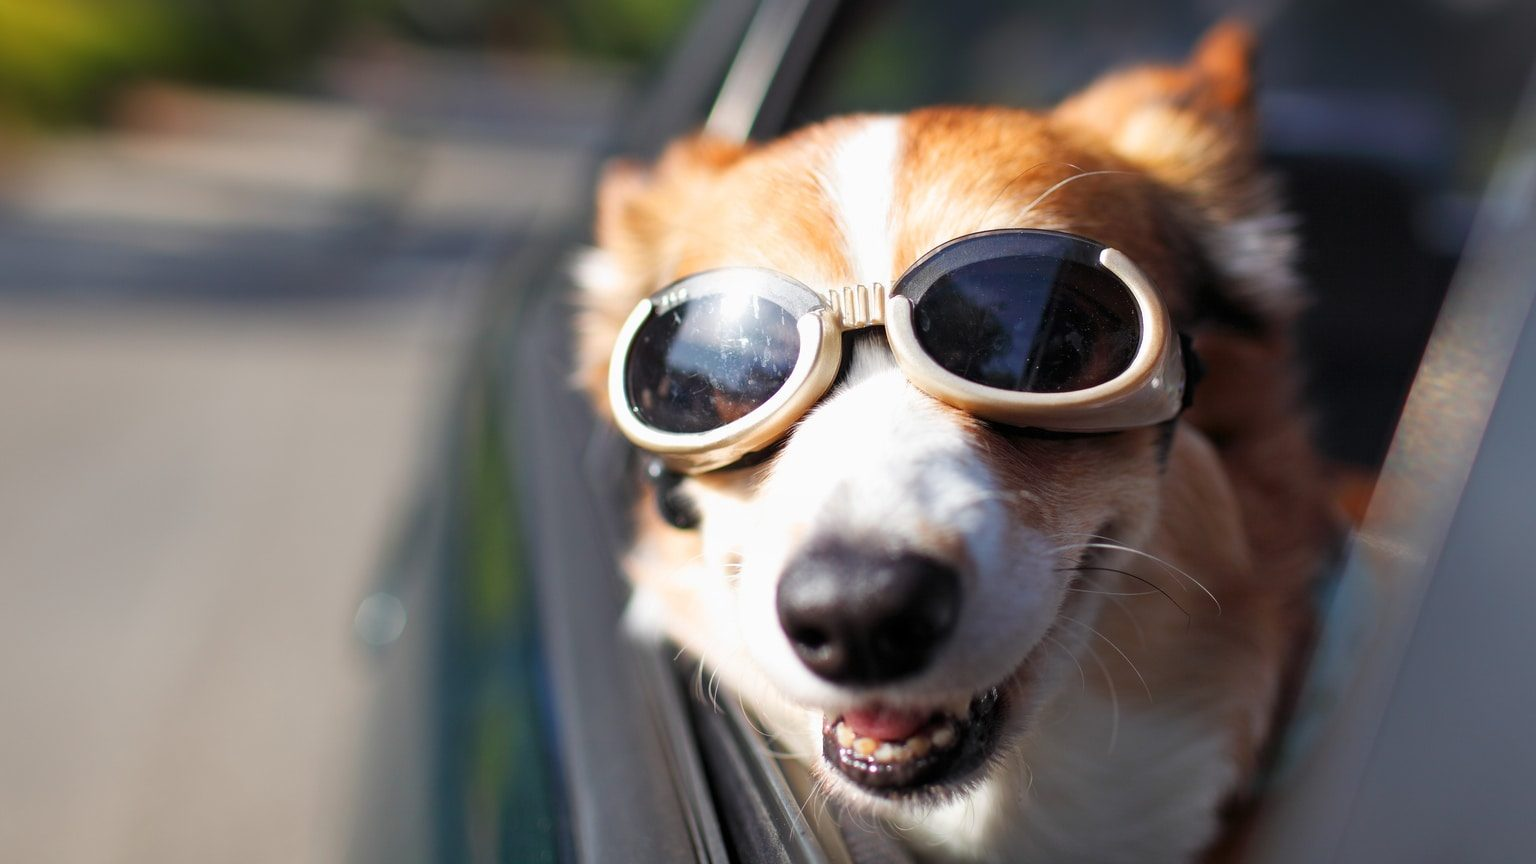 Dog wearing goggles hanging out of car window